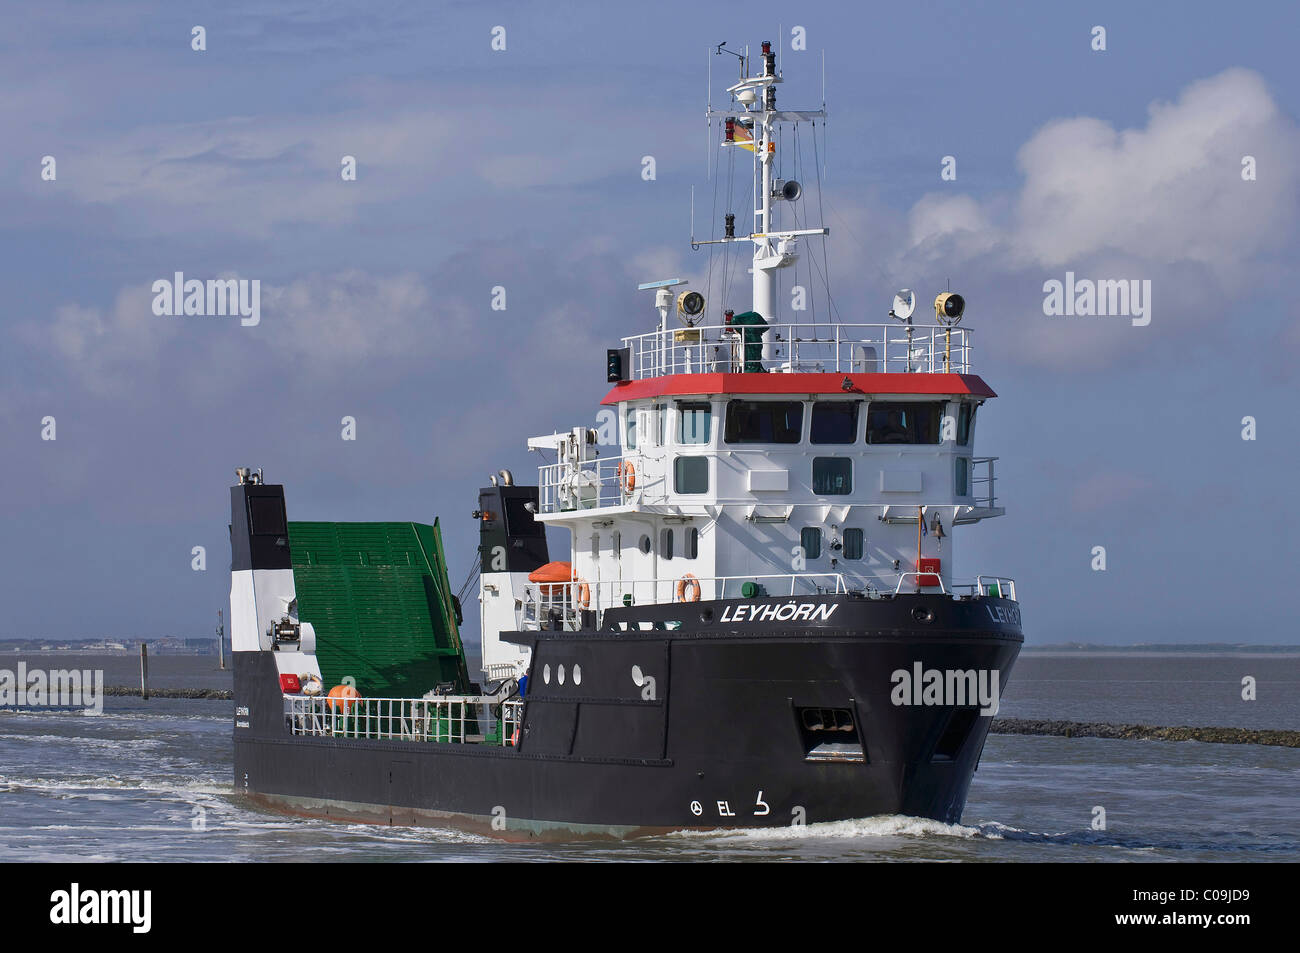 Multi-purpose vessel, Leyhoern, from the Lower Saxony Water Management, Coastal Defence and Nature Conservation - Stock Image